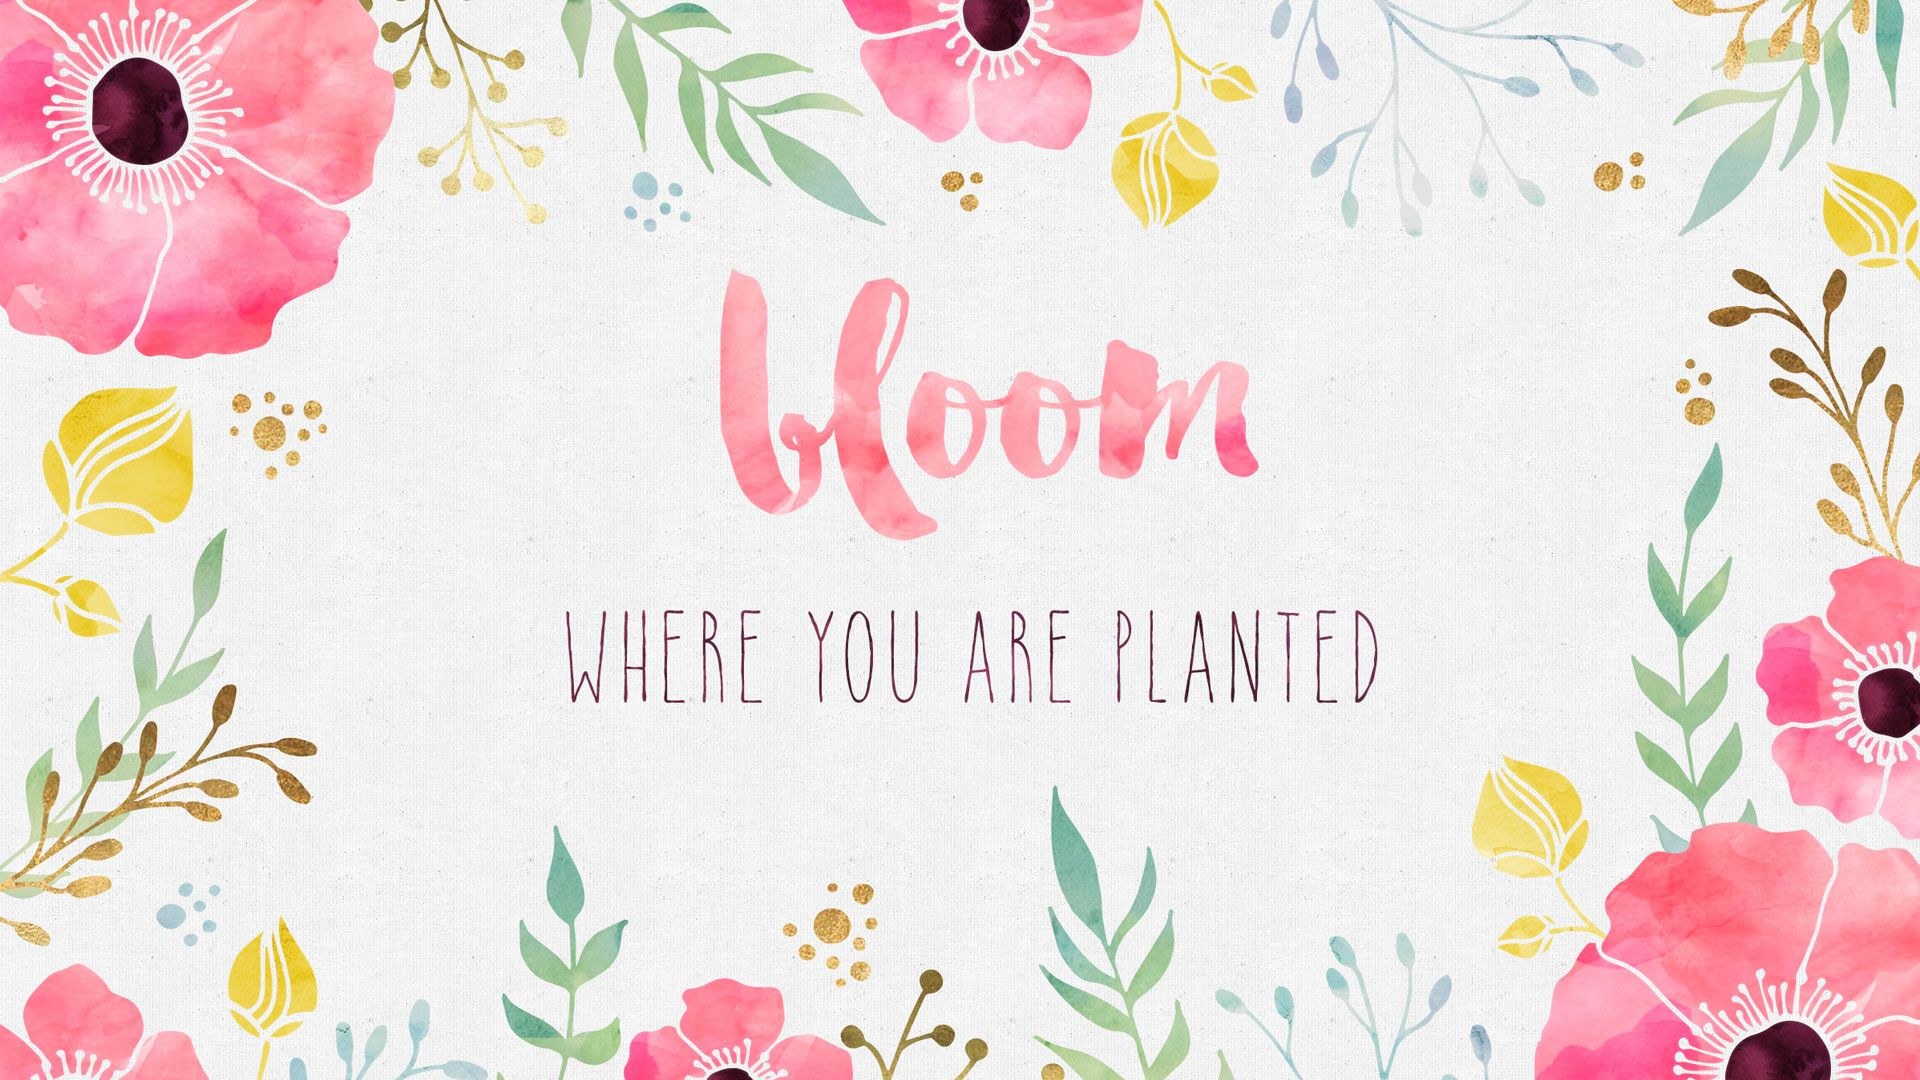 Free Desktop Wallpaper - Bloom Where you are Planted